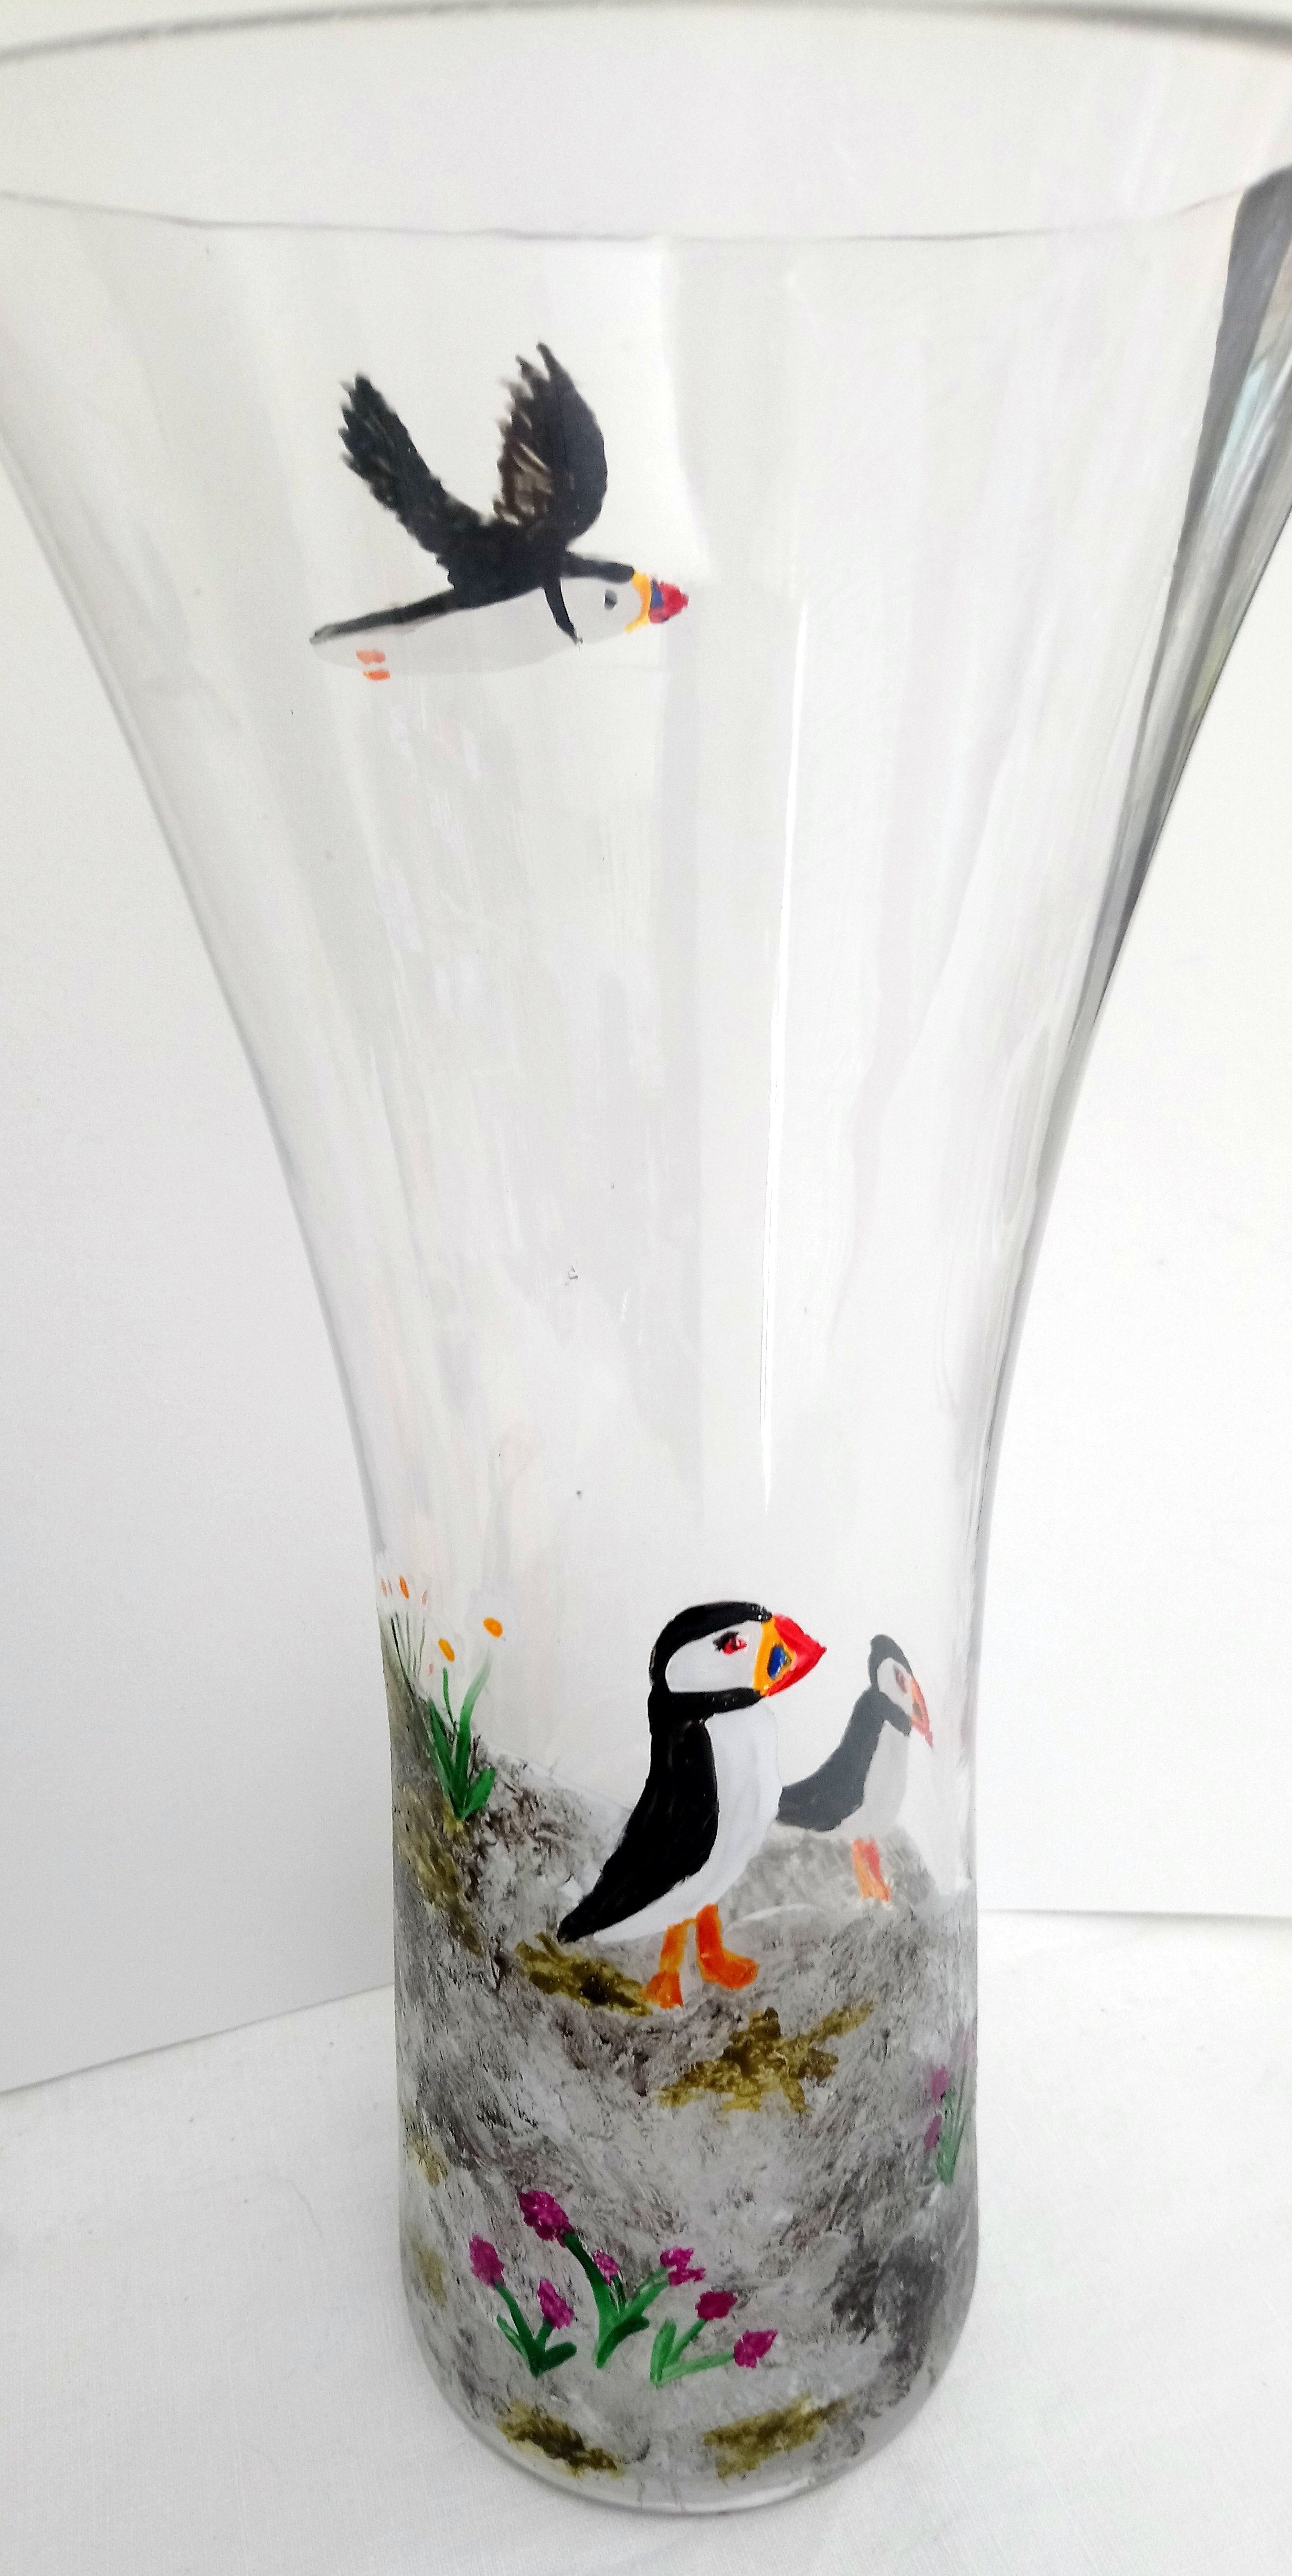 A glass vase with puffins on a cliff, an original glass painting